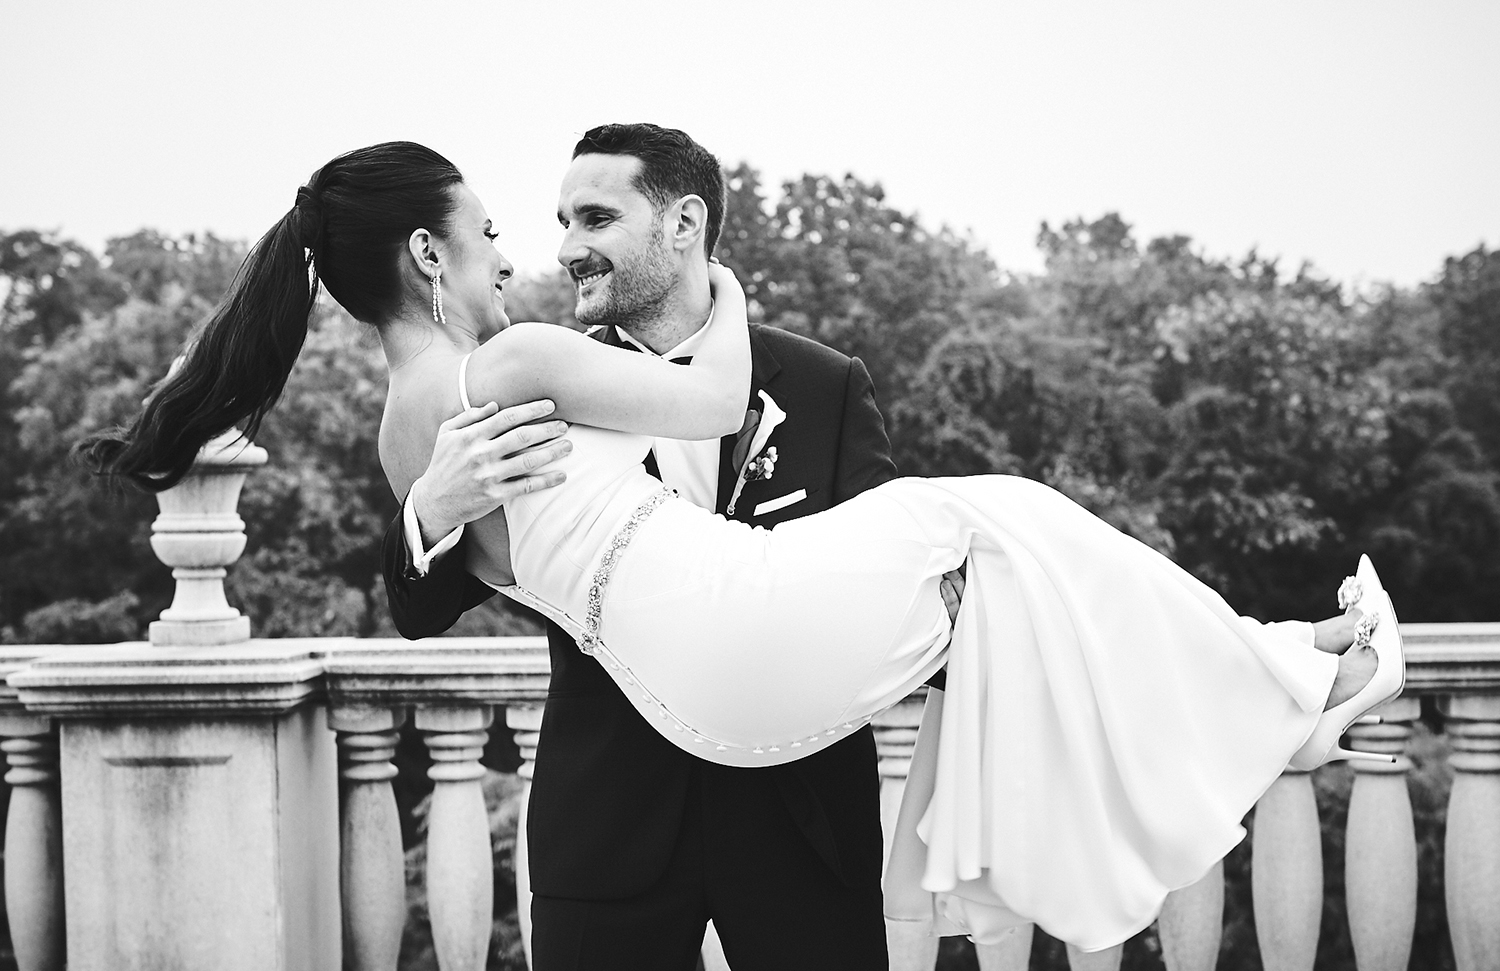 180519_PalaceatSomersetParkWeddingPhotography_NJWeddingPhotographer_By_BriJohnsonWeddings_0081.jpg